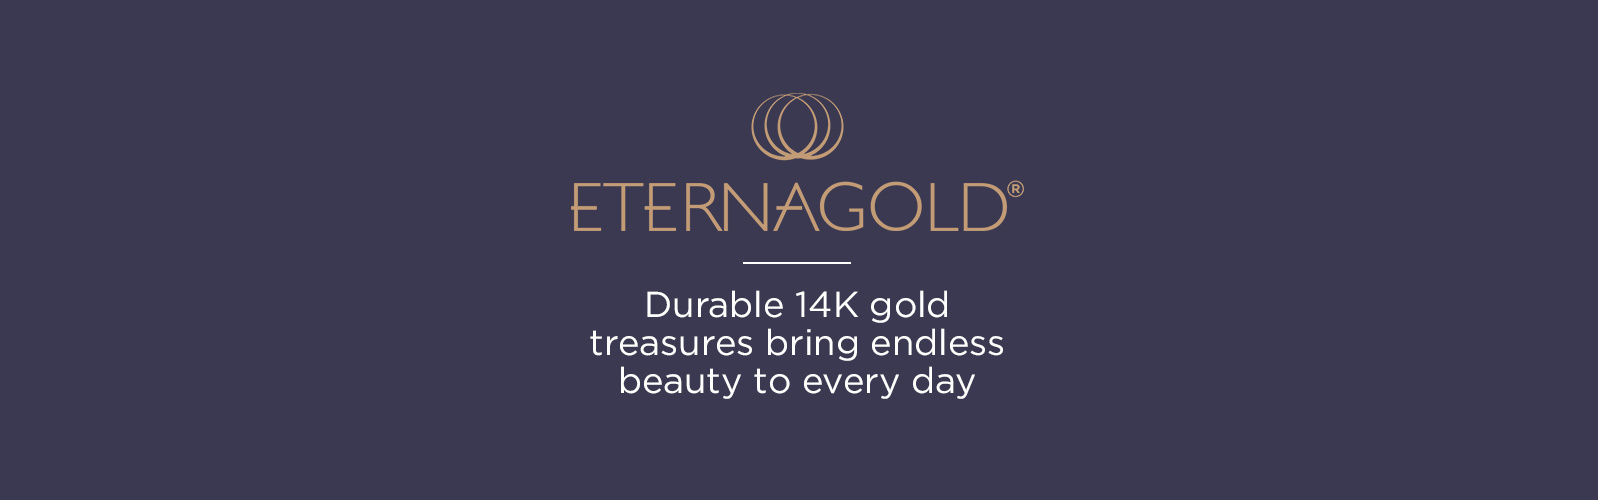 EternaGold® Durable 14K gold treasures bring endless beauty to every day